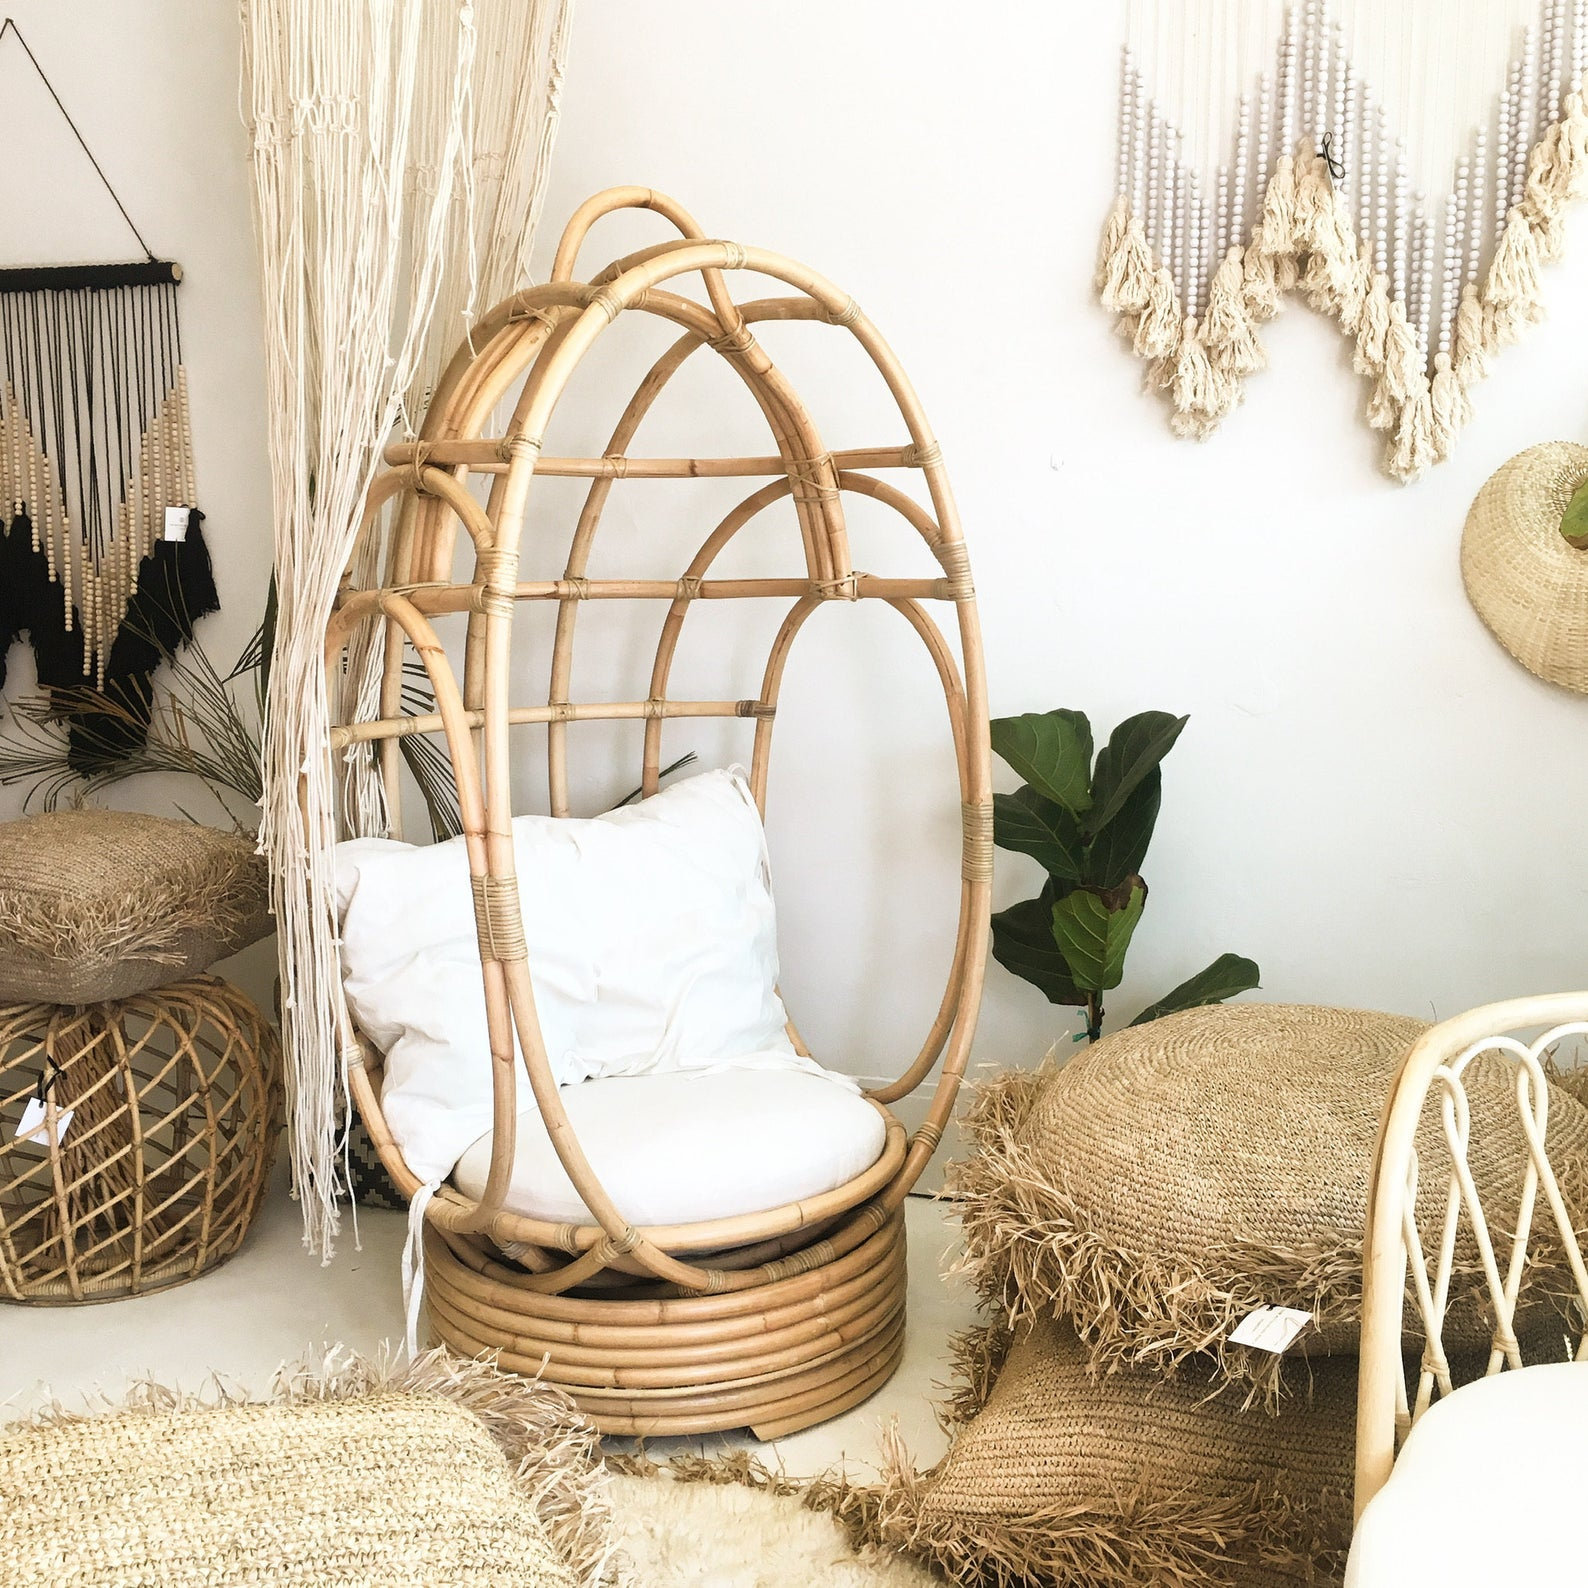 Stylish Boho egg chairs - Image via The Wicked Boheme (Etsy) feat. Vintage Style Rattan Swivel Egg Chair.